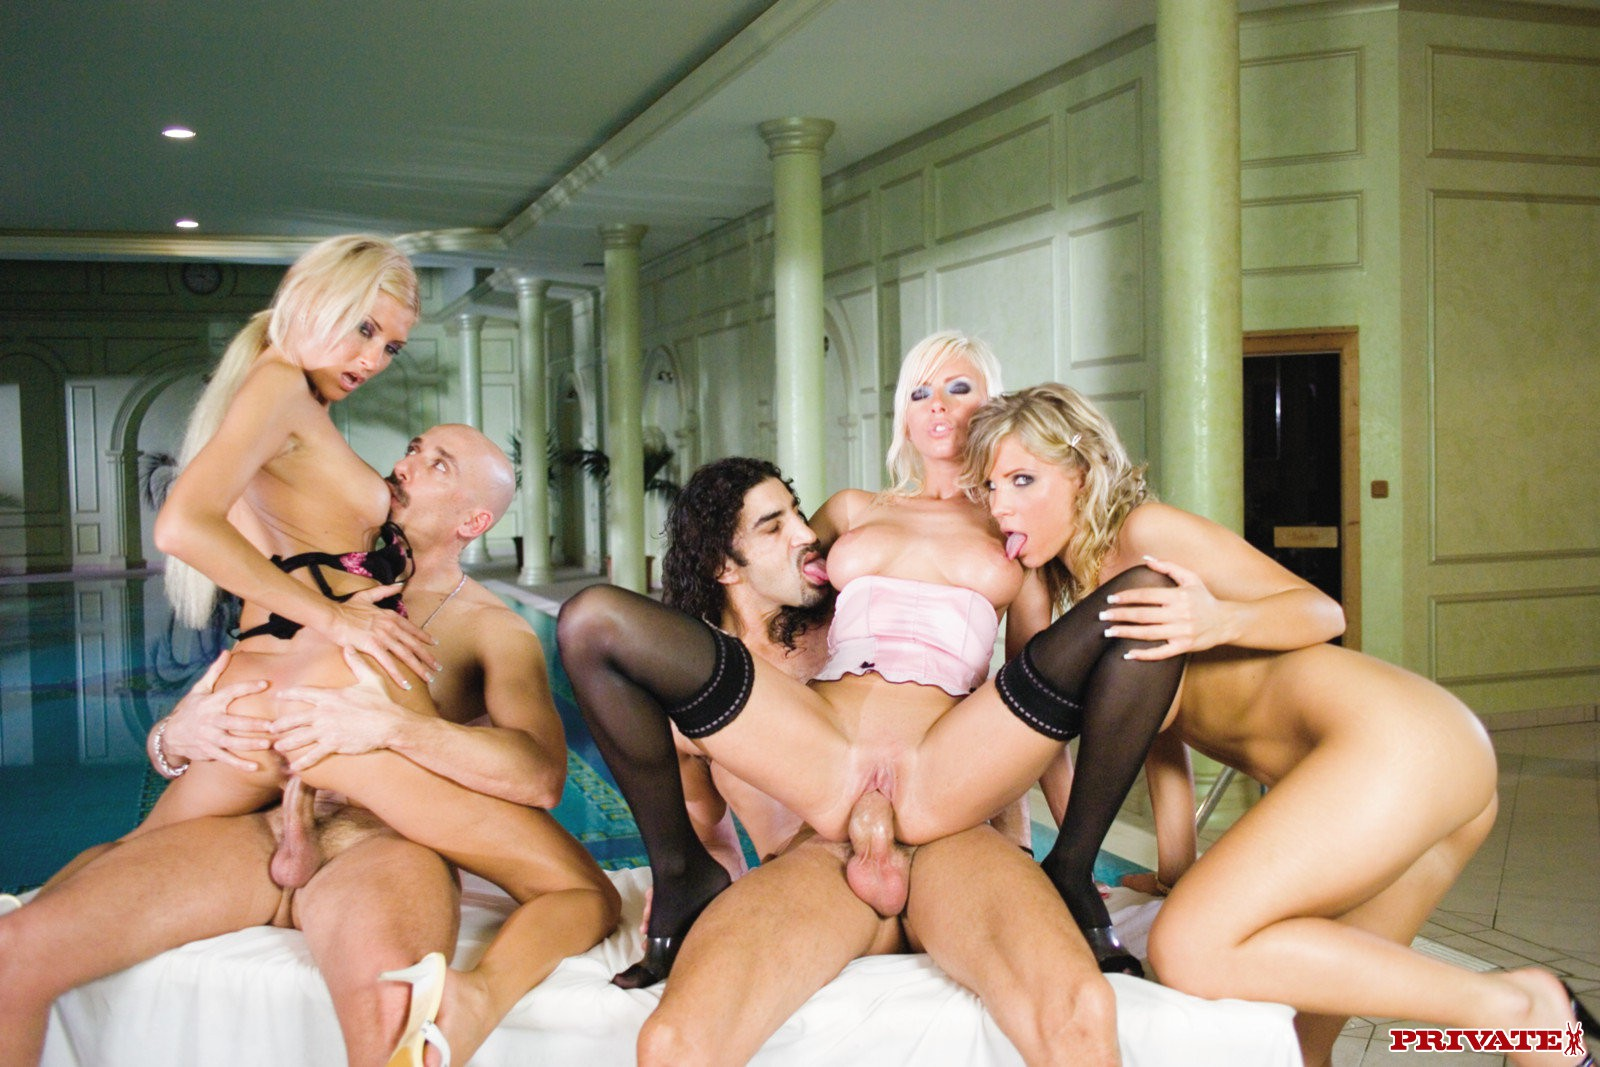 Midget free movie trailer orgy and erotic and